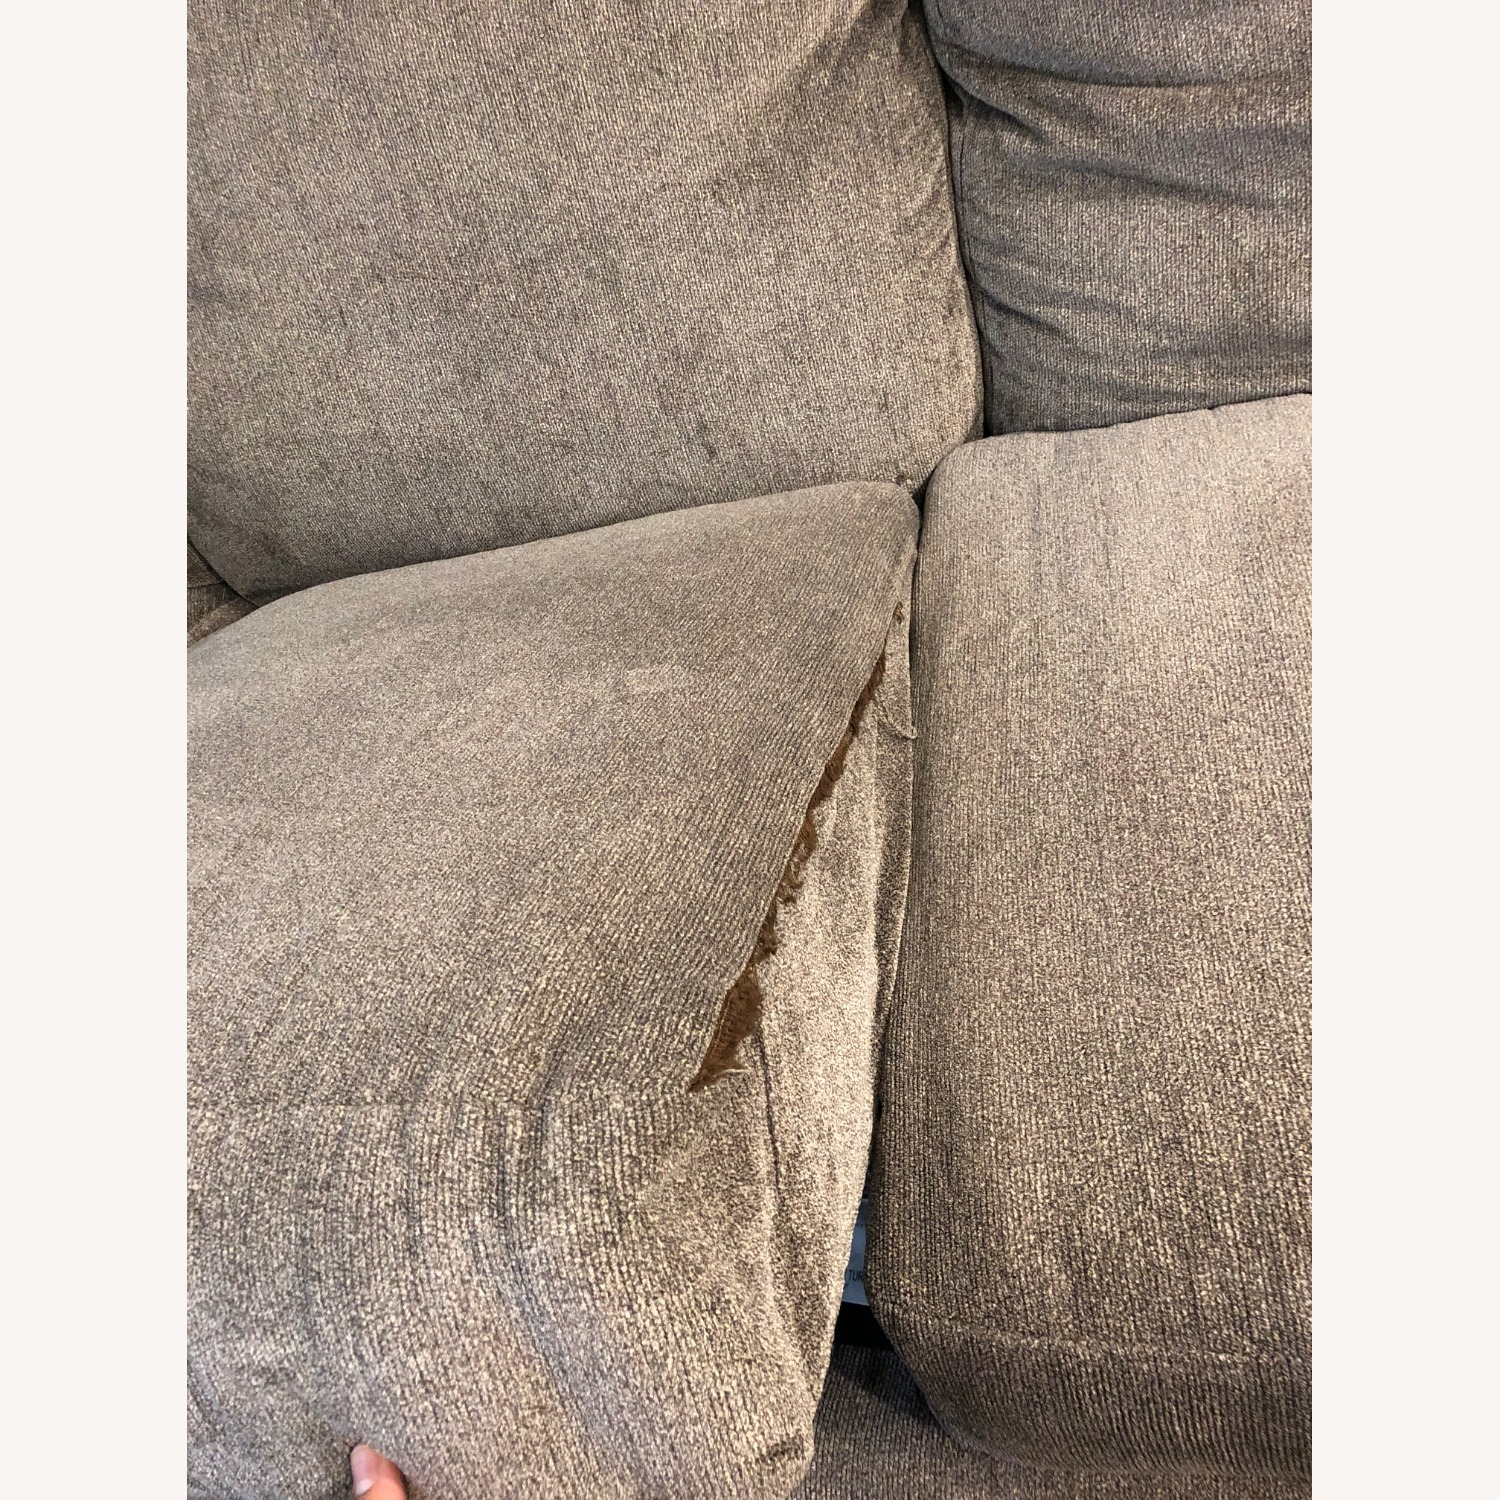 Microfiber 2 piece Sectional includes the Cuddler - image-3